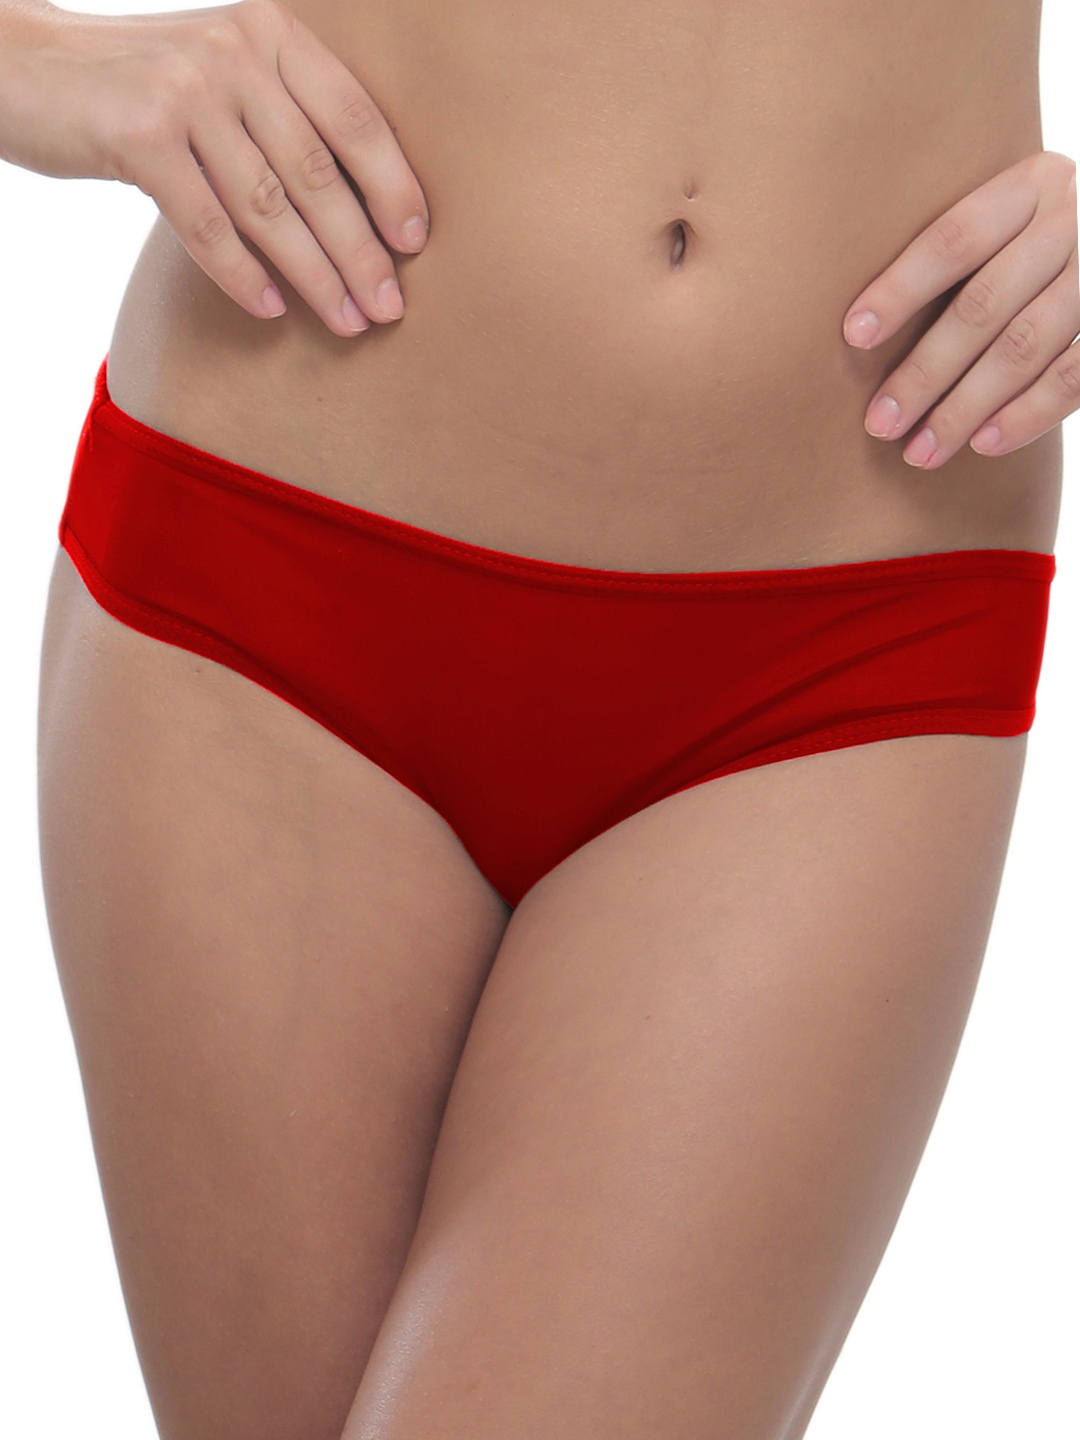 Find great deals on eBay for mens red briefs. Shop with confidence.